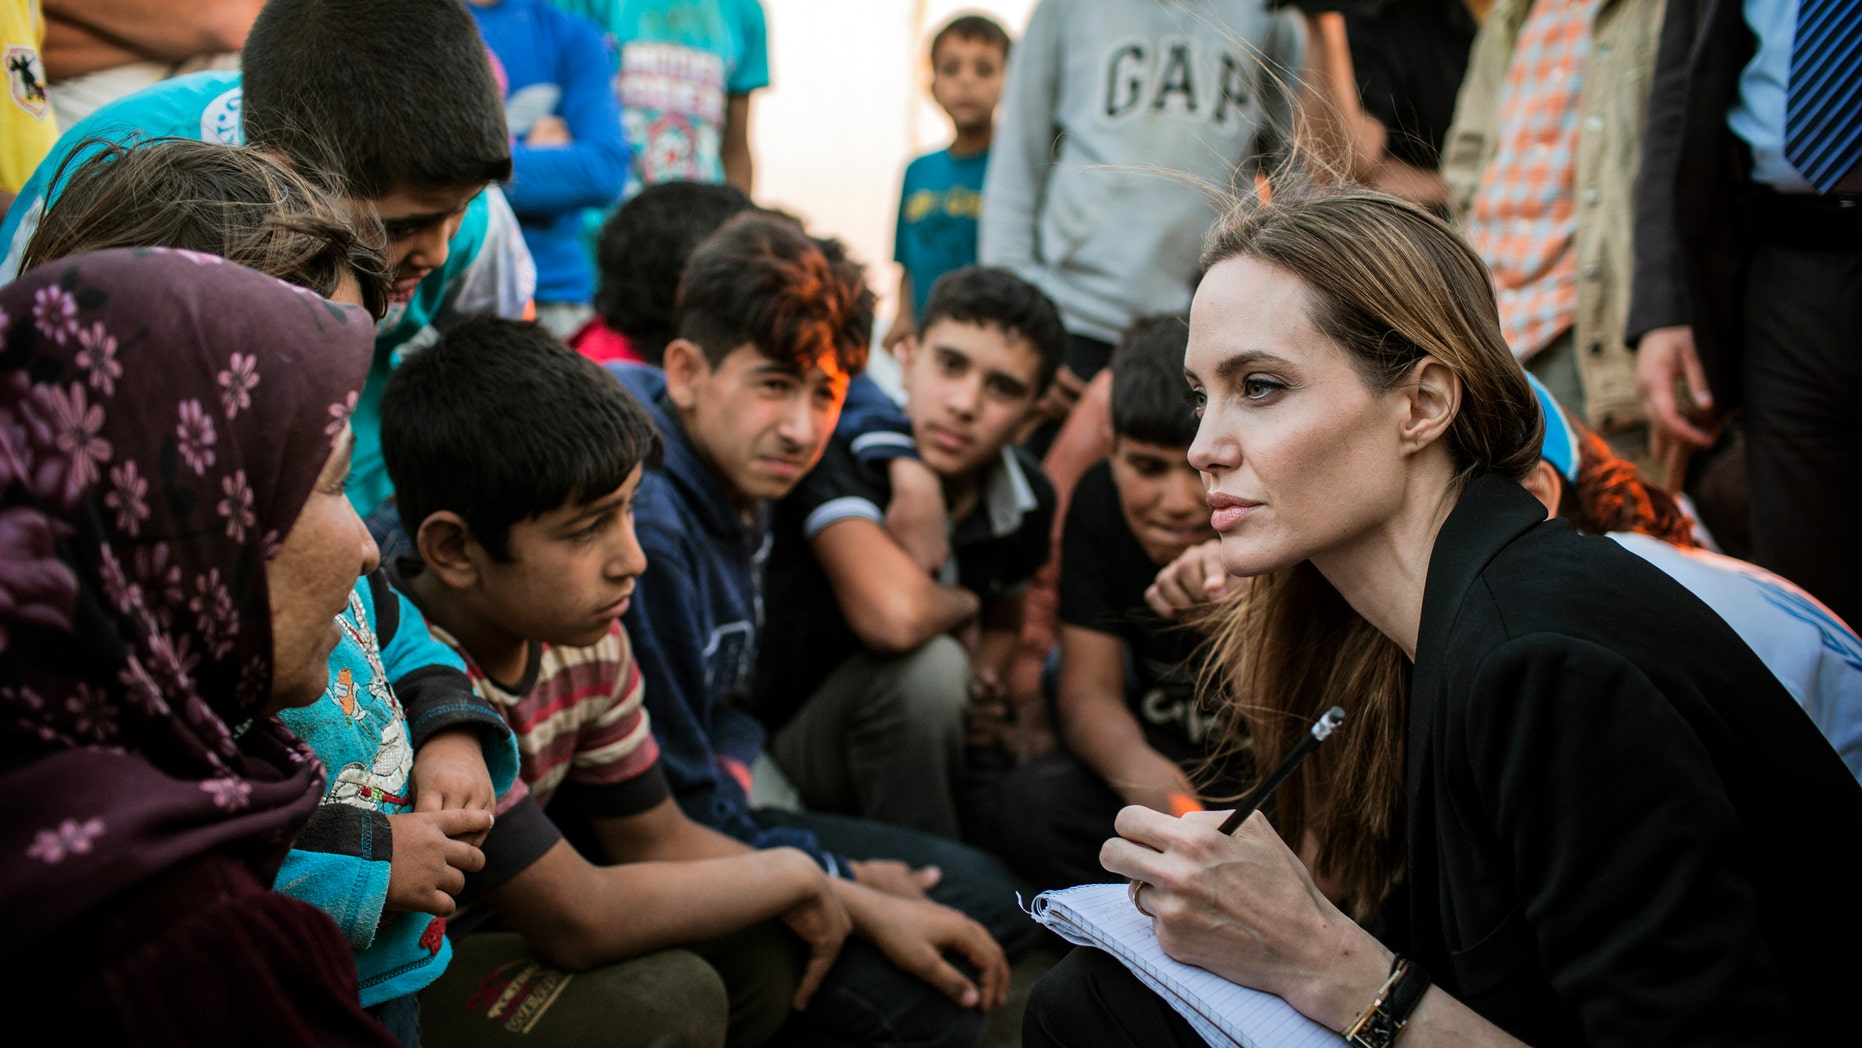 June 18, 2013  - Special envoy Angelina Jolie taking notes as she speaks with Syrian refugees in a Jordanian military camp near the Syria-Jordan border. (photo released by the United Nations High Commissioner for Refugees (UNHCR)